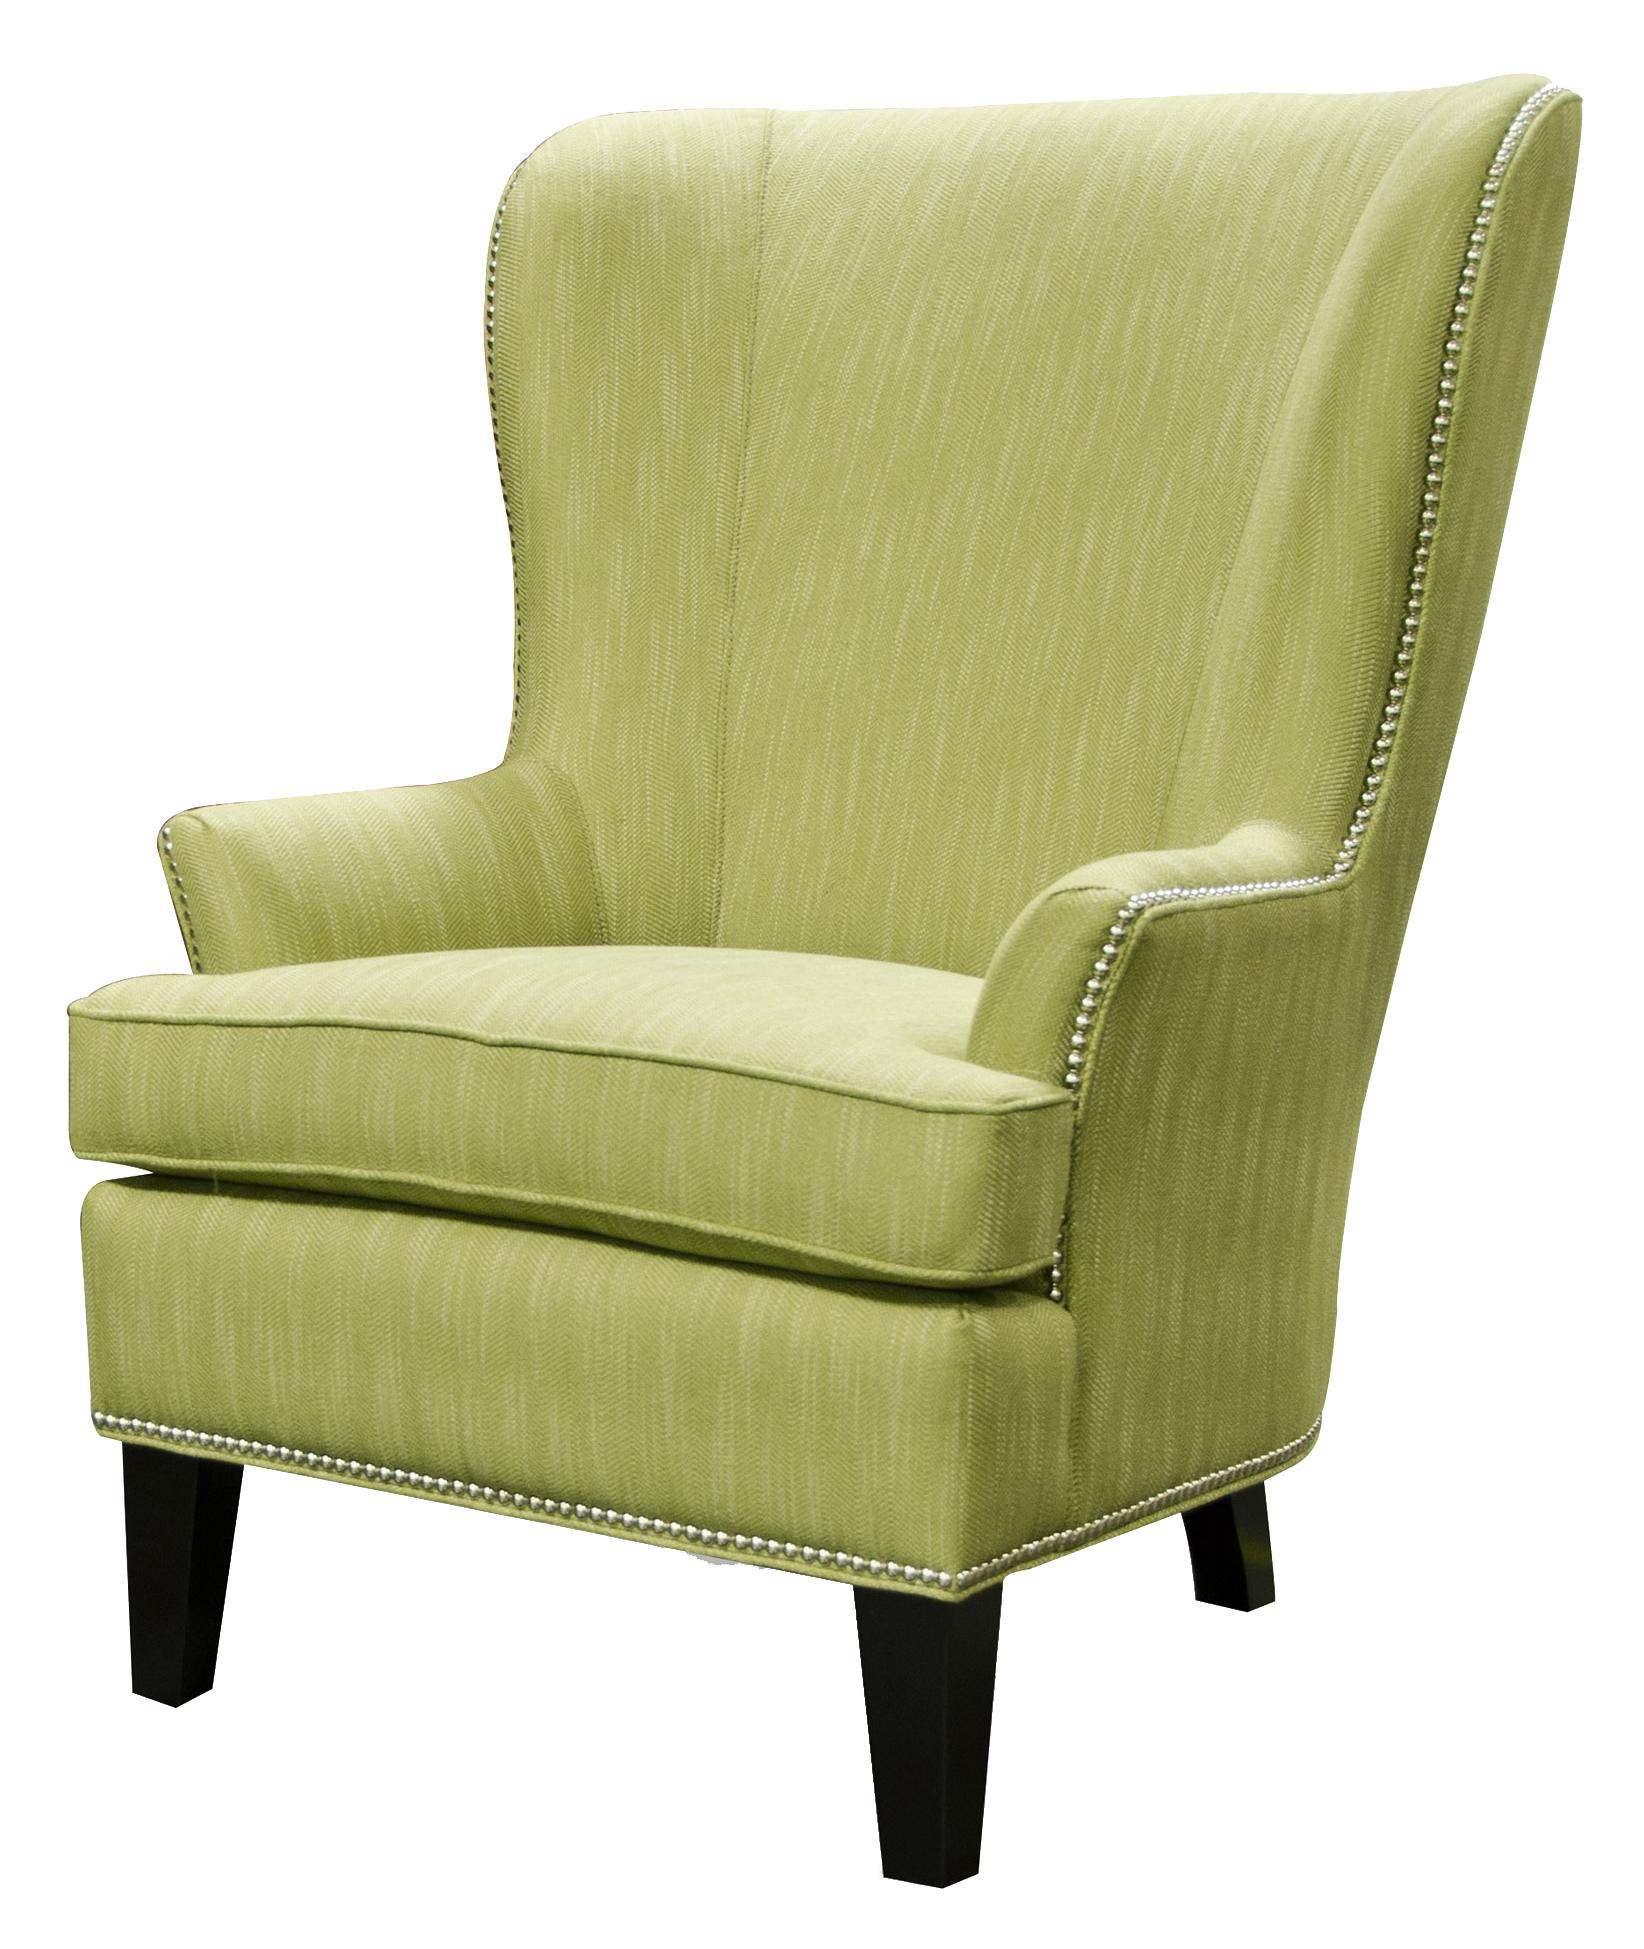 England Saylor Wing Chair - Item Number: 4534N